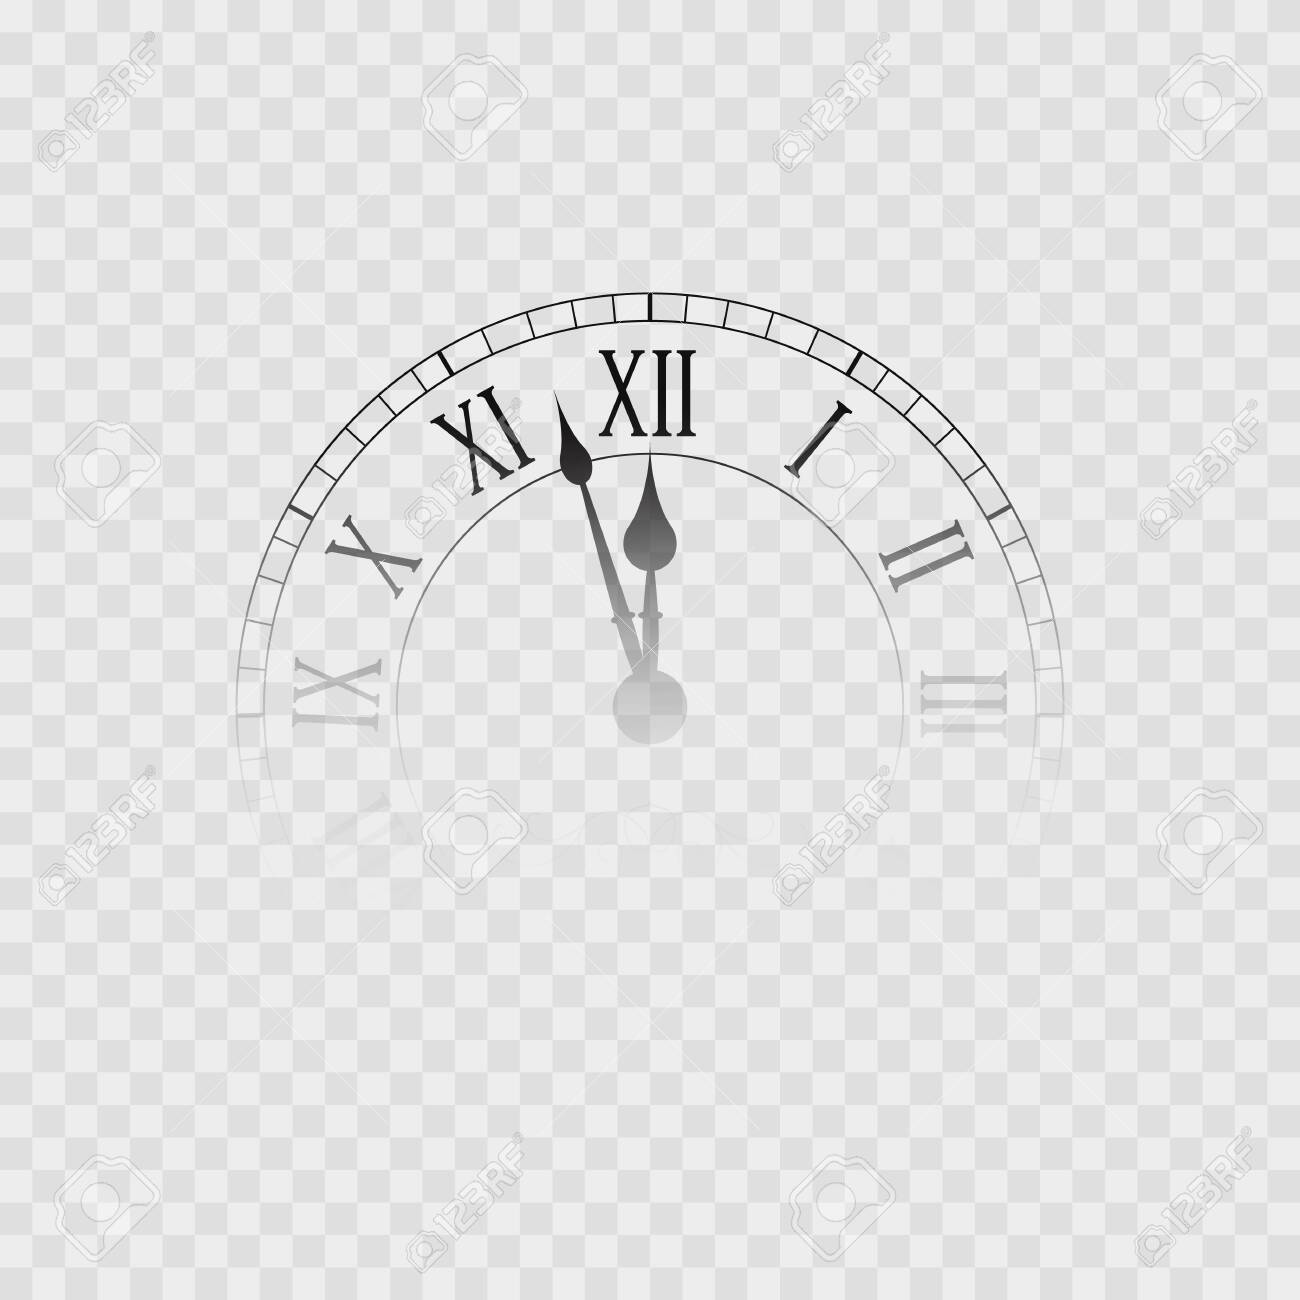 New year clock. Transparent clock icon, Isolated on white. Vector illustration - 148299120